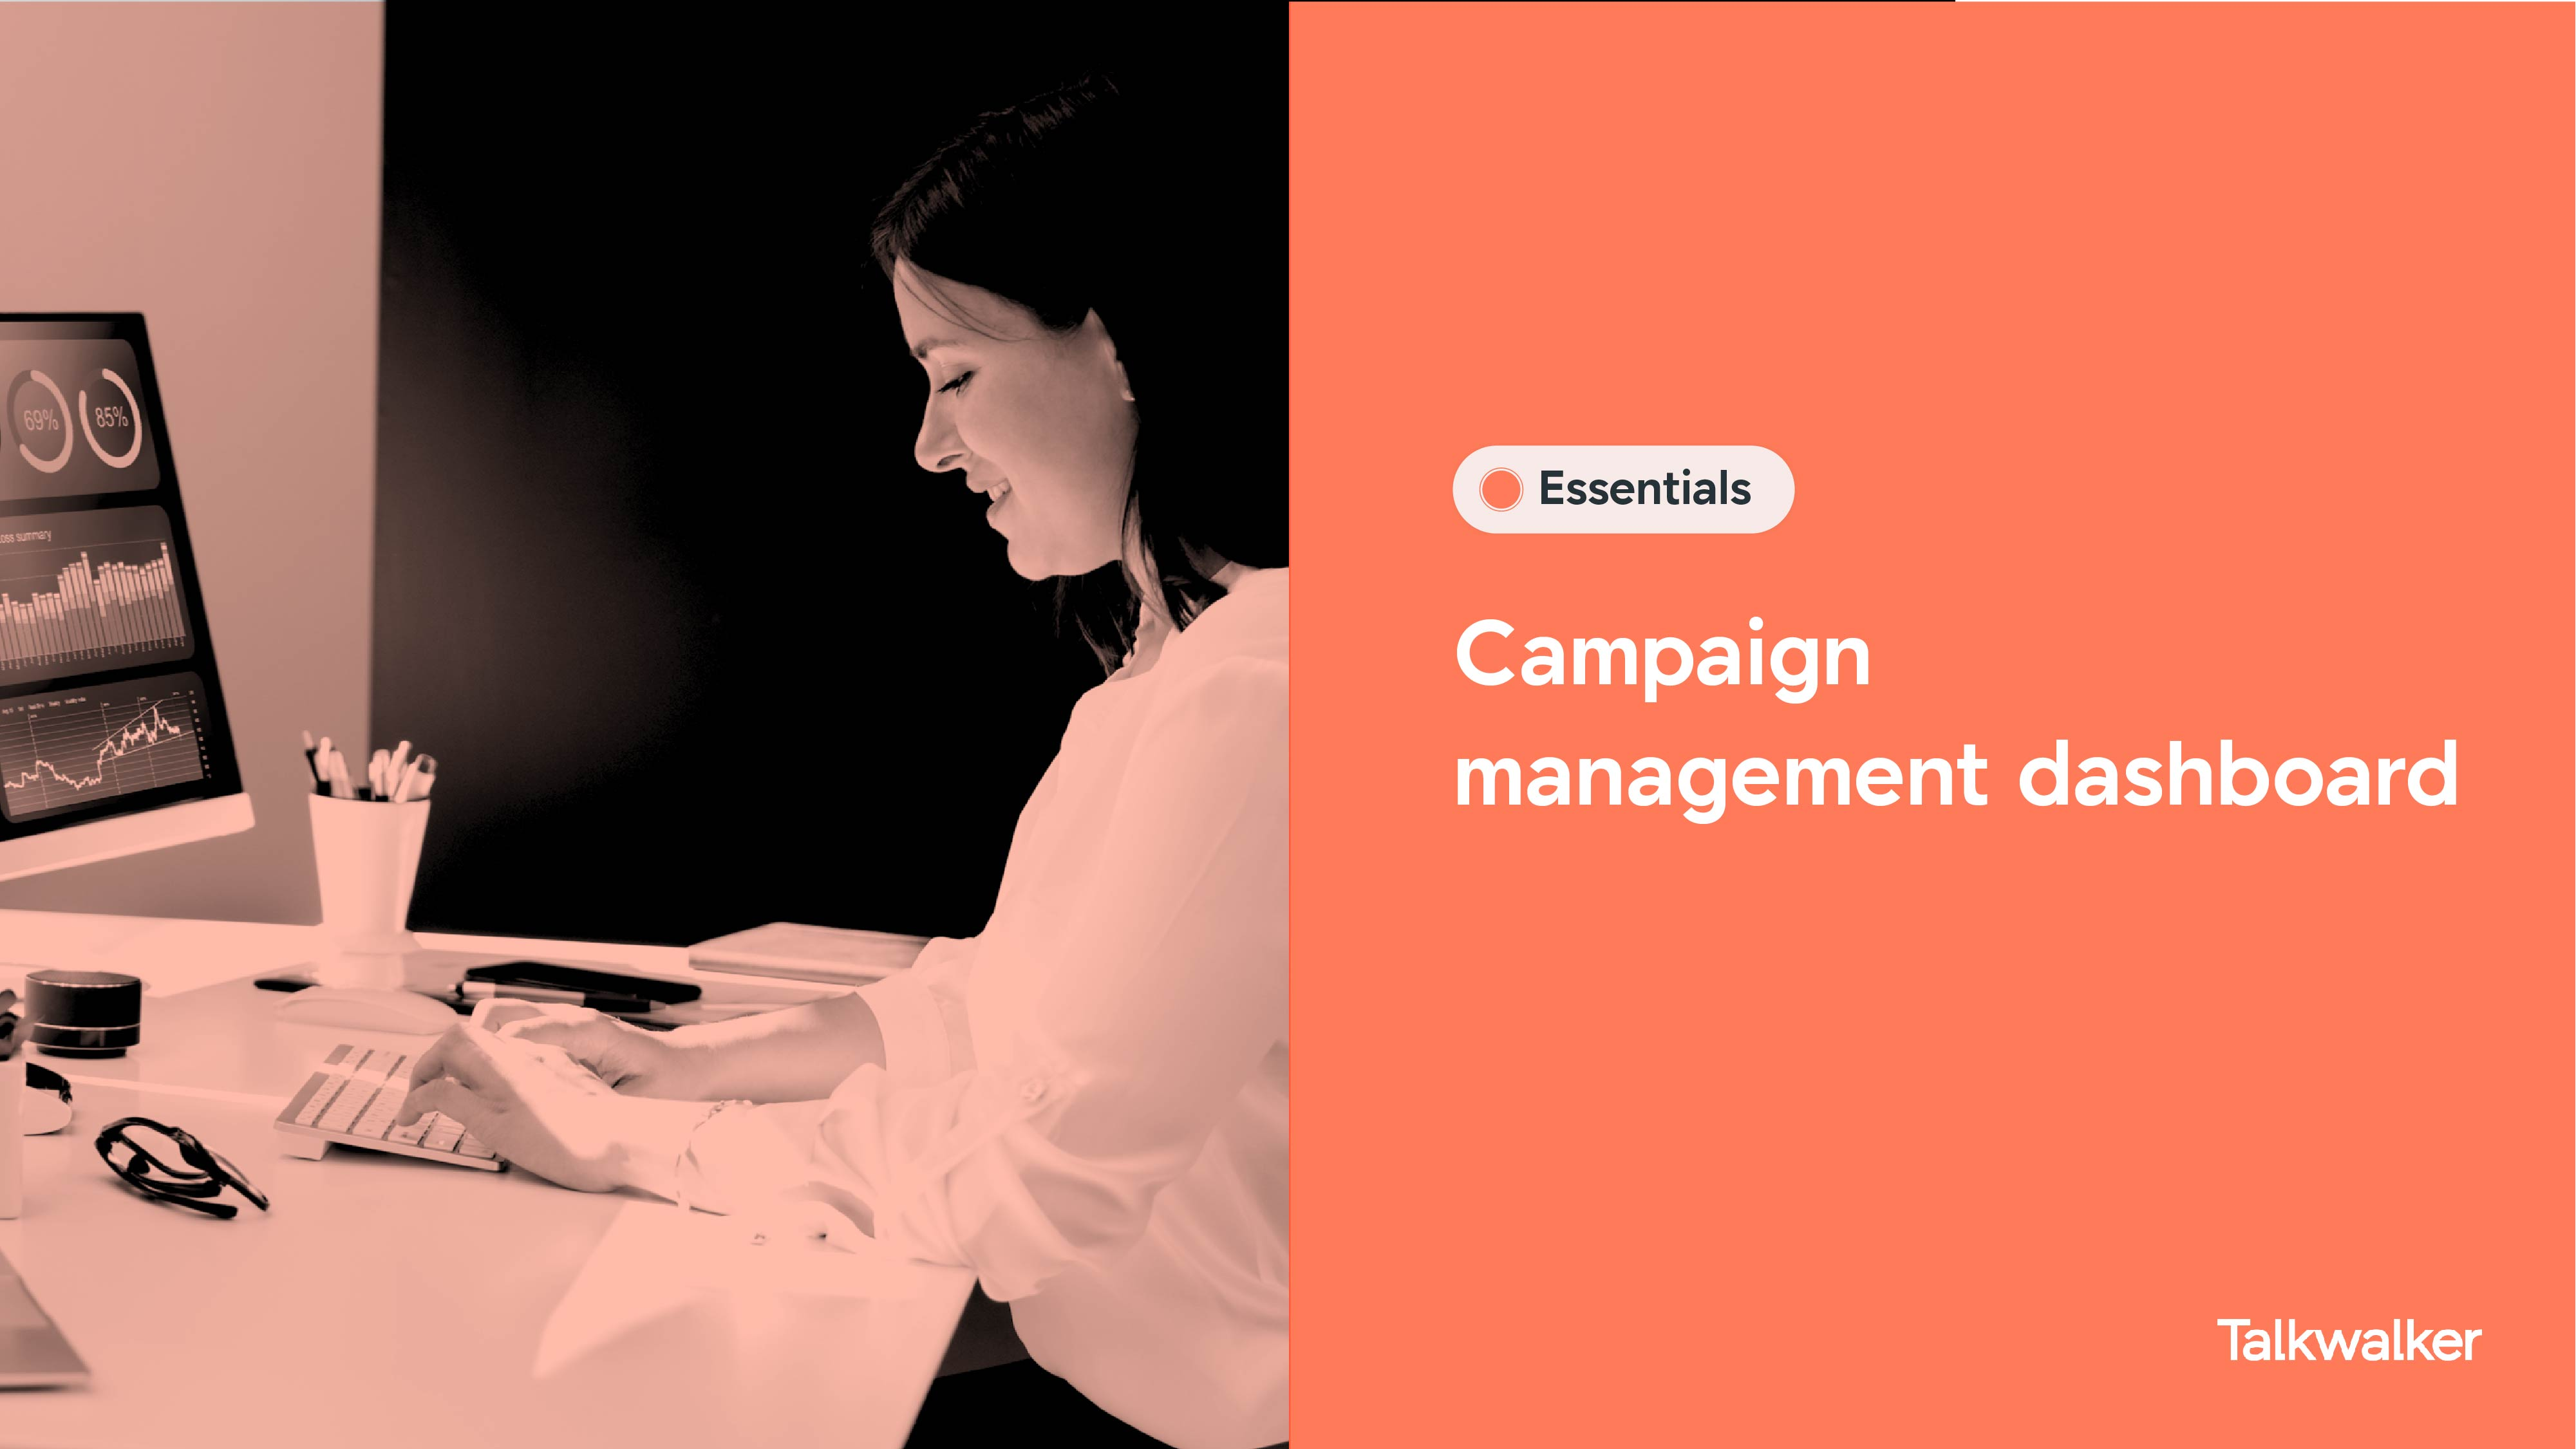 Campaign management dashboard template template of soda industry - woman typing in front of screen